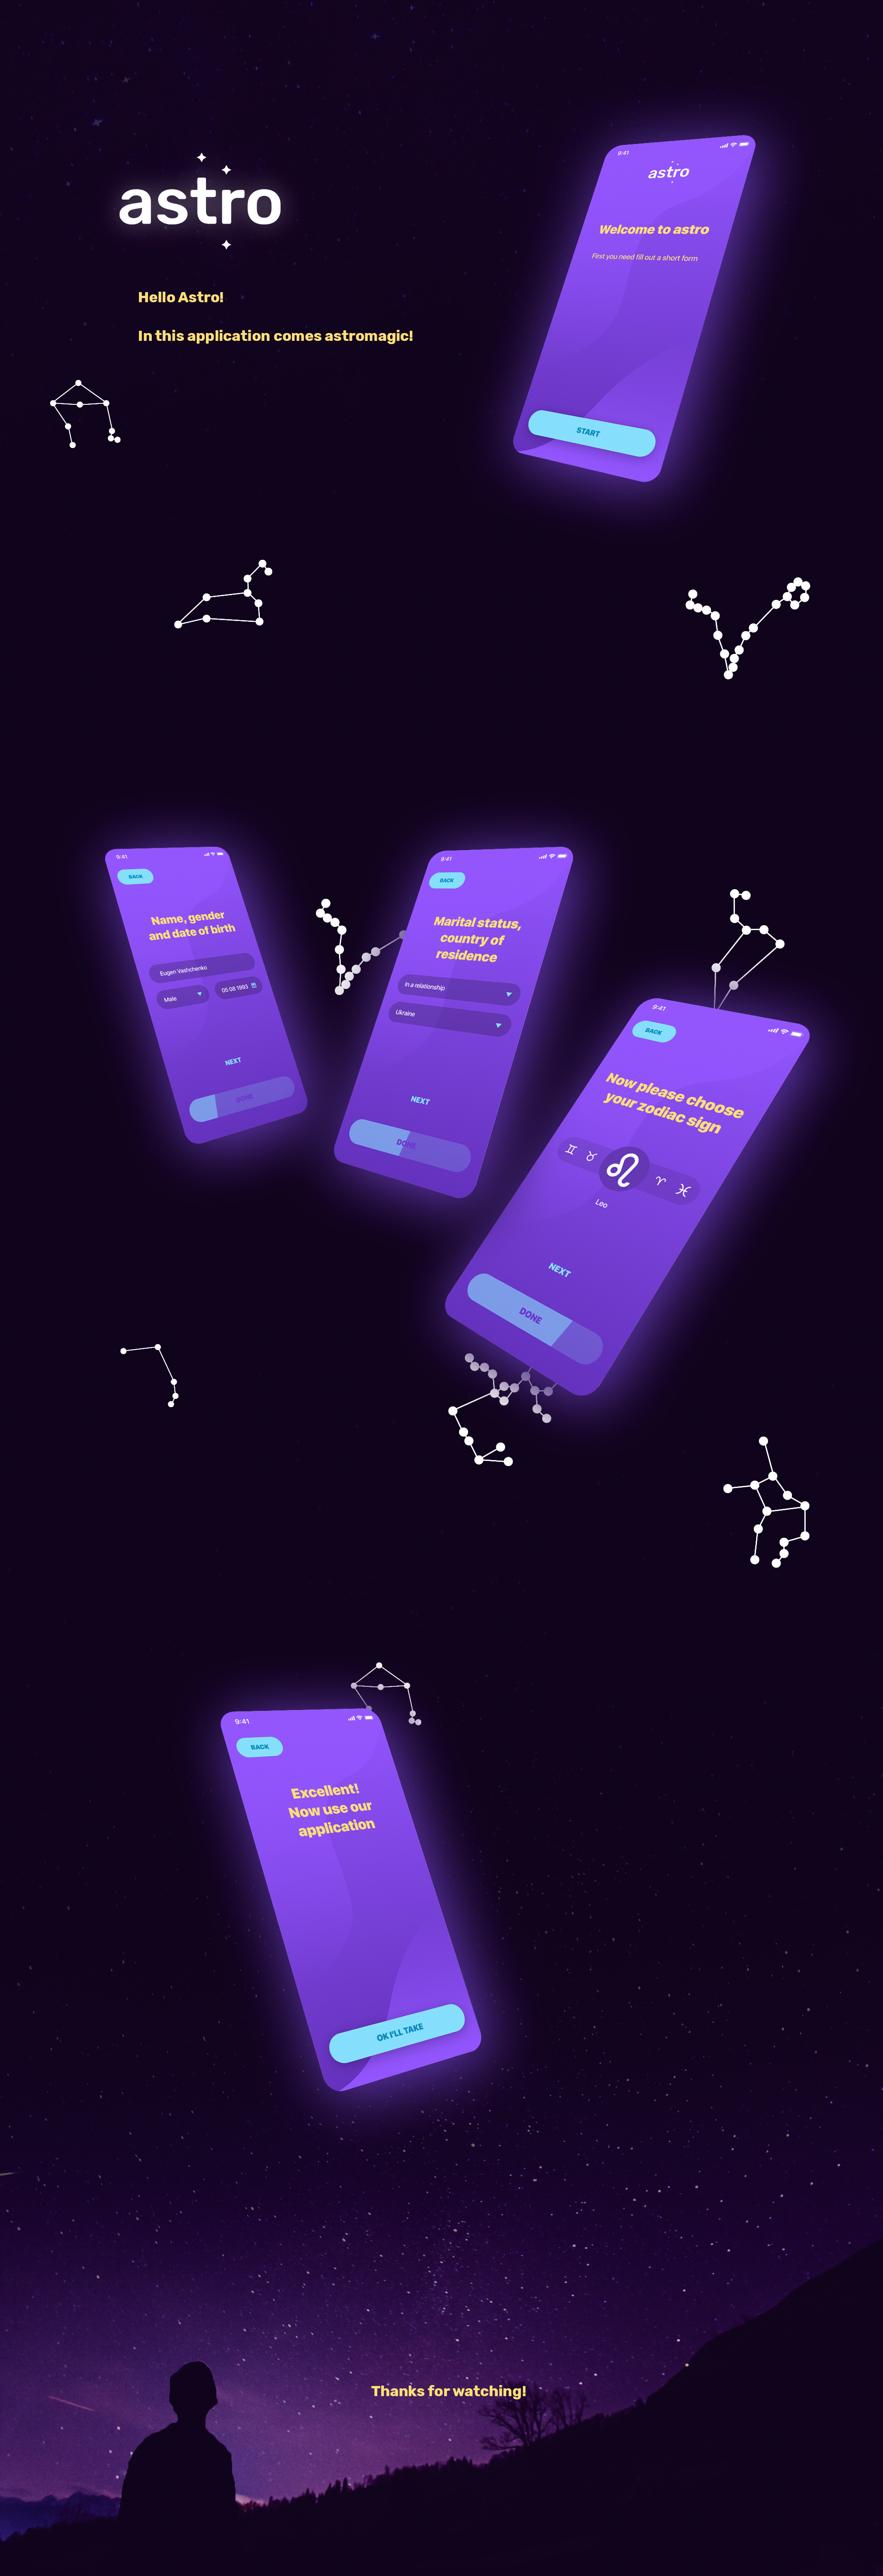 content of astro app from softactix